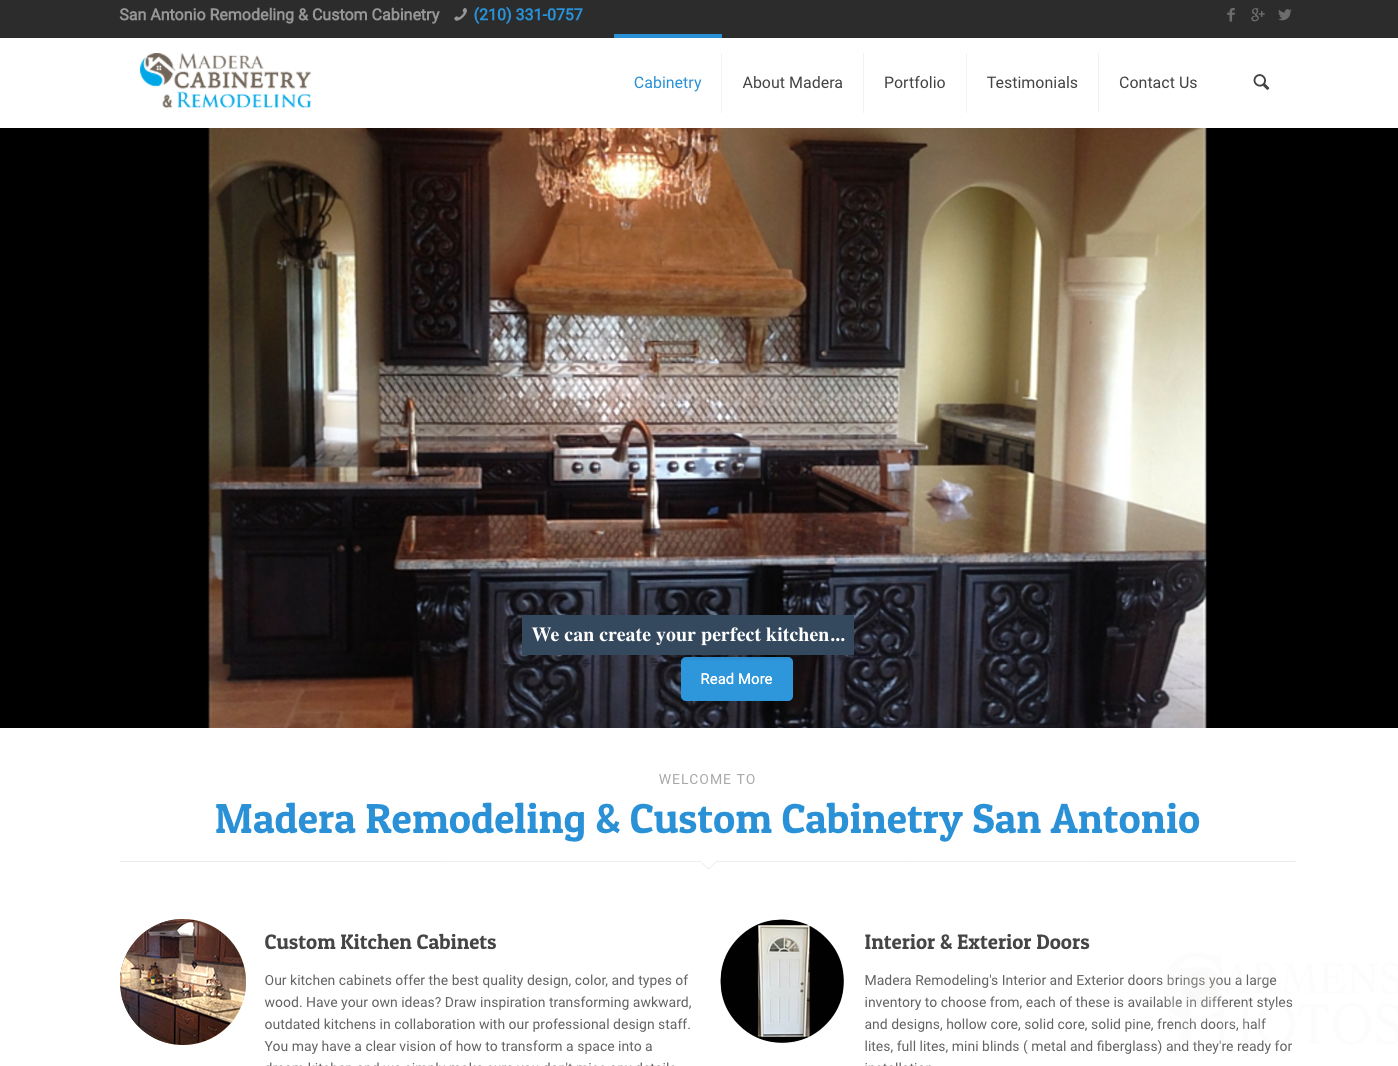 Cabinetry & Remodeling Site